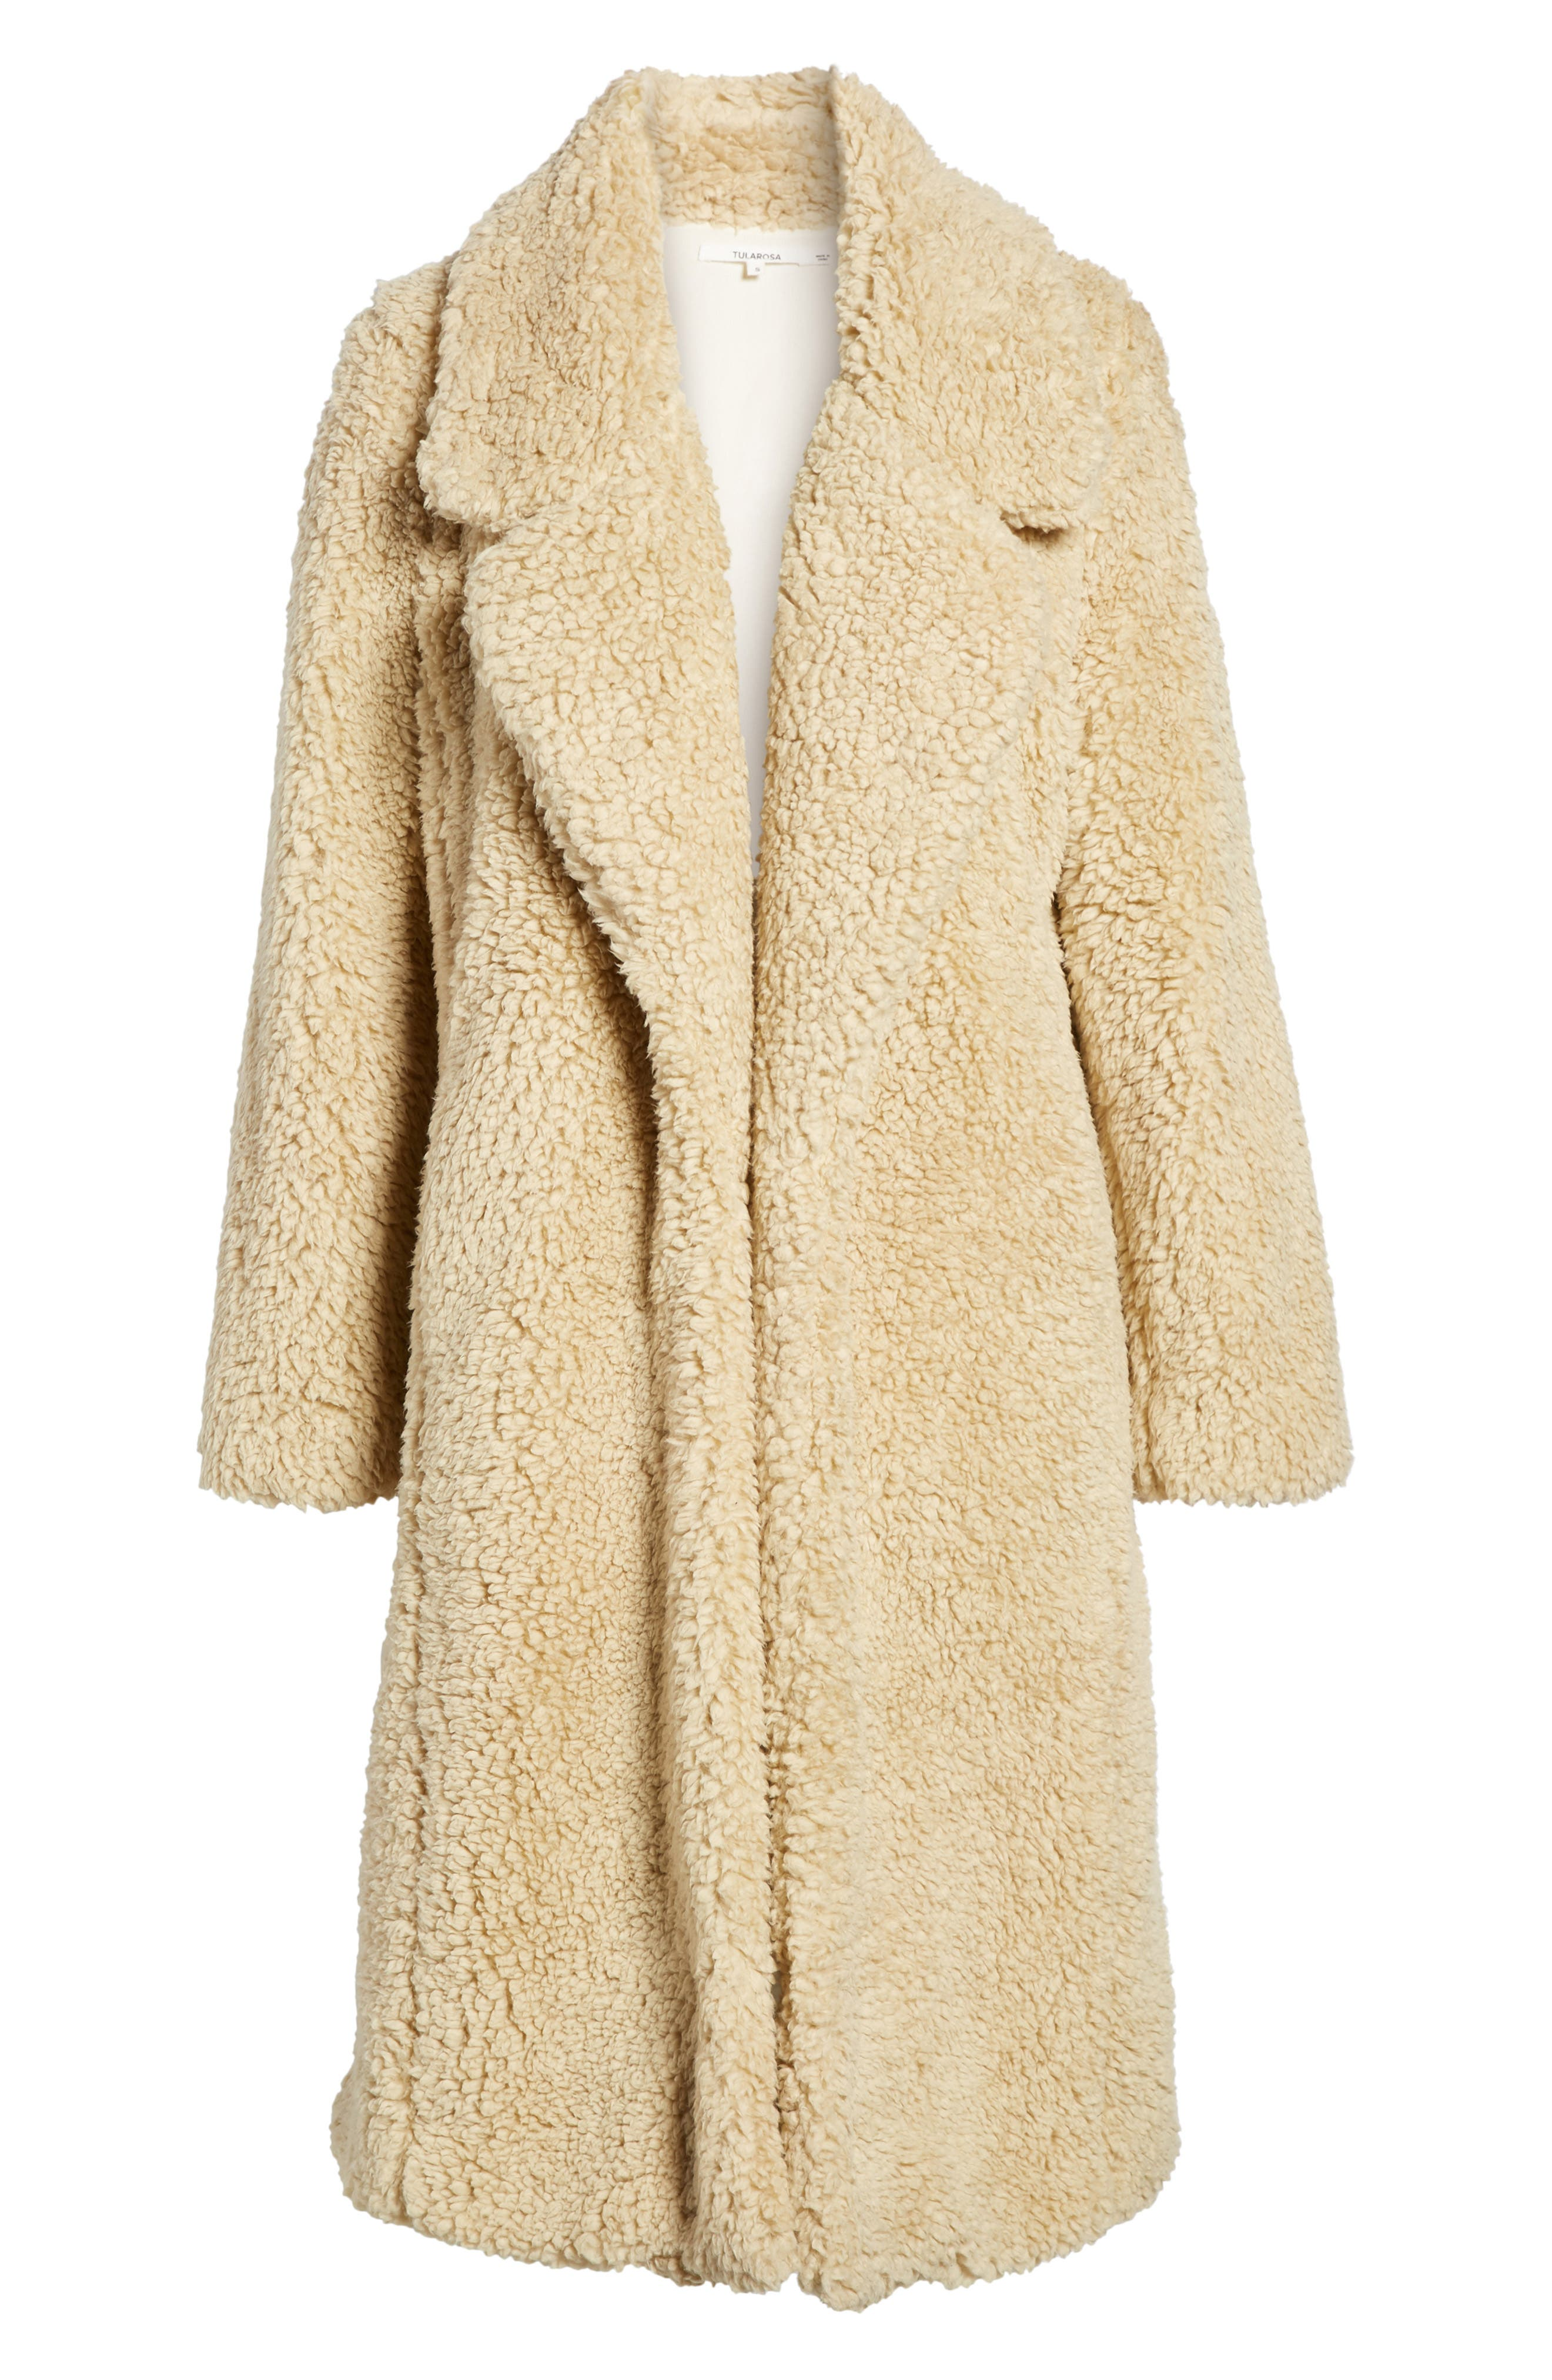 Violet Teddy Bear Coat,                             Alternate thumbnail 6, color,                             Beige